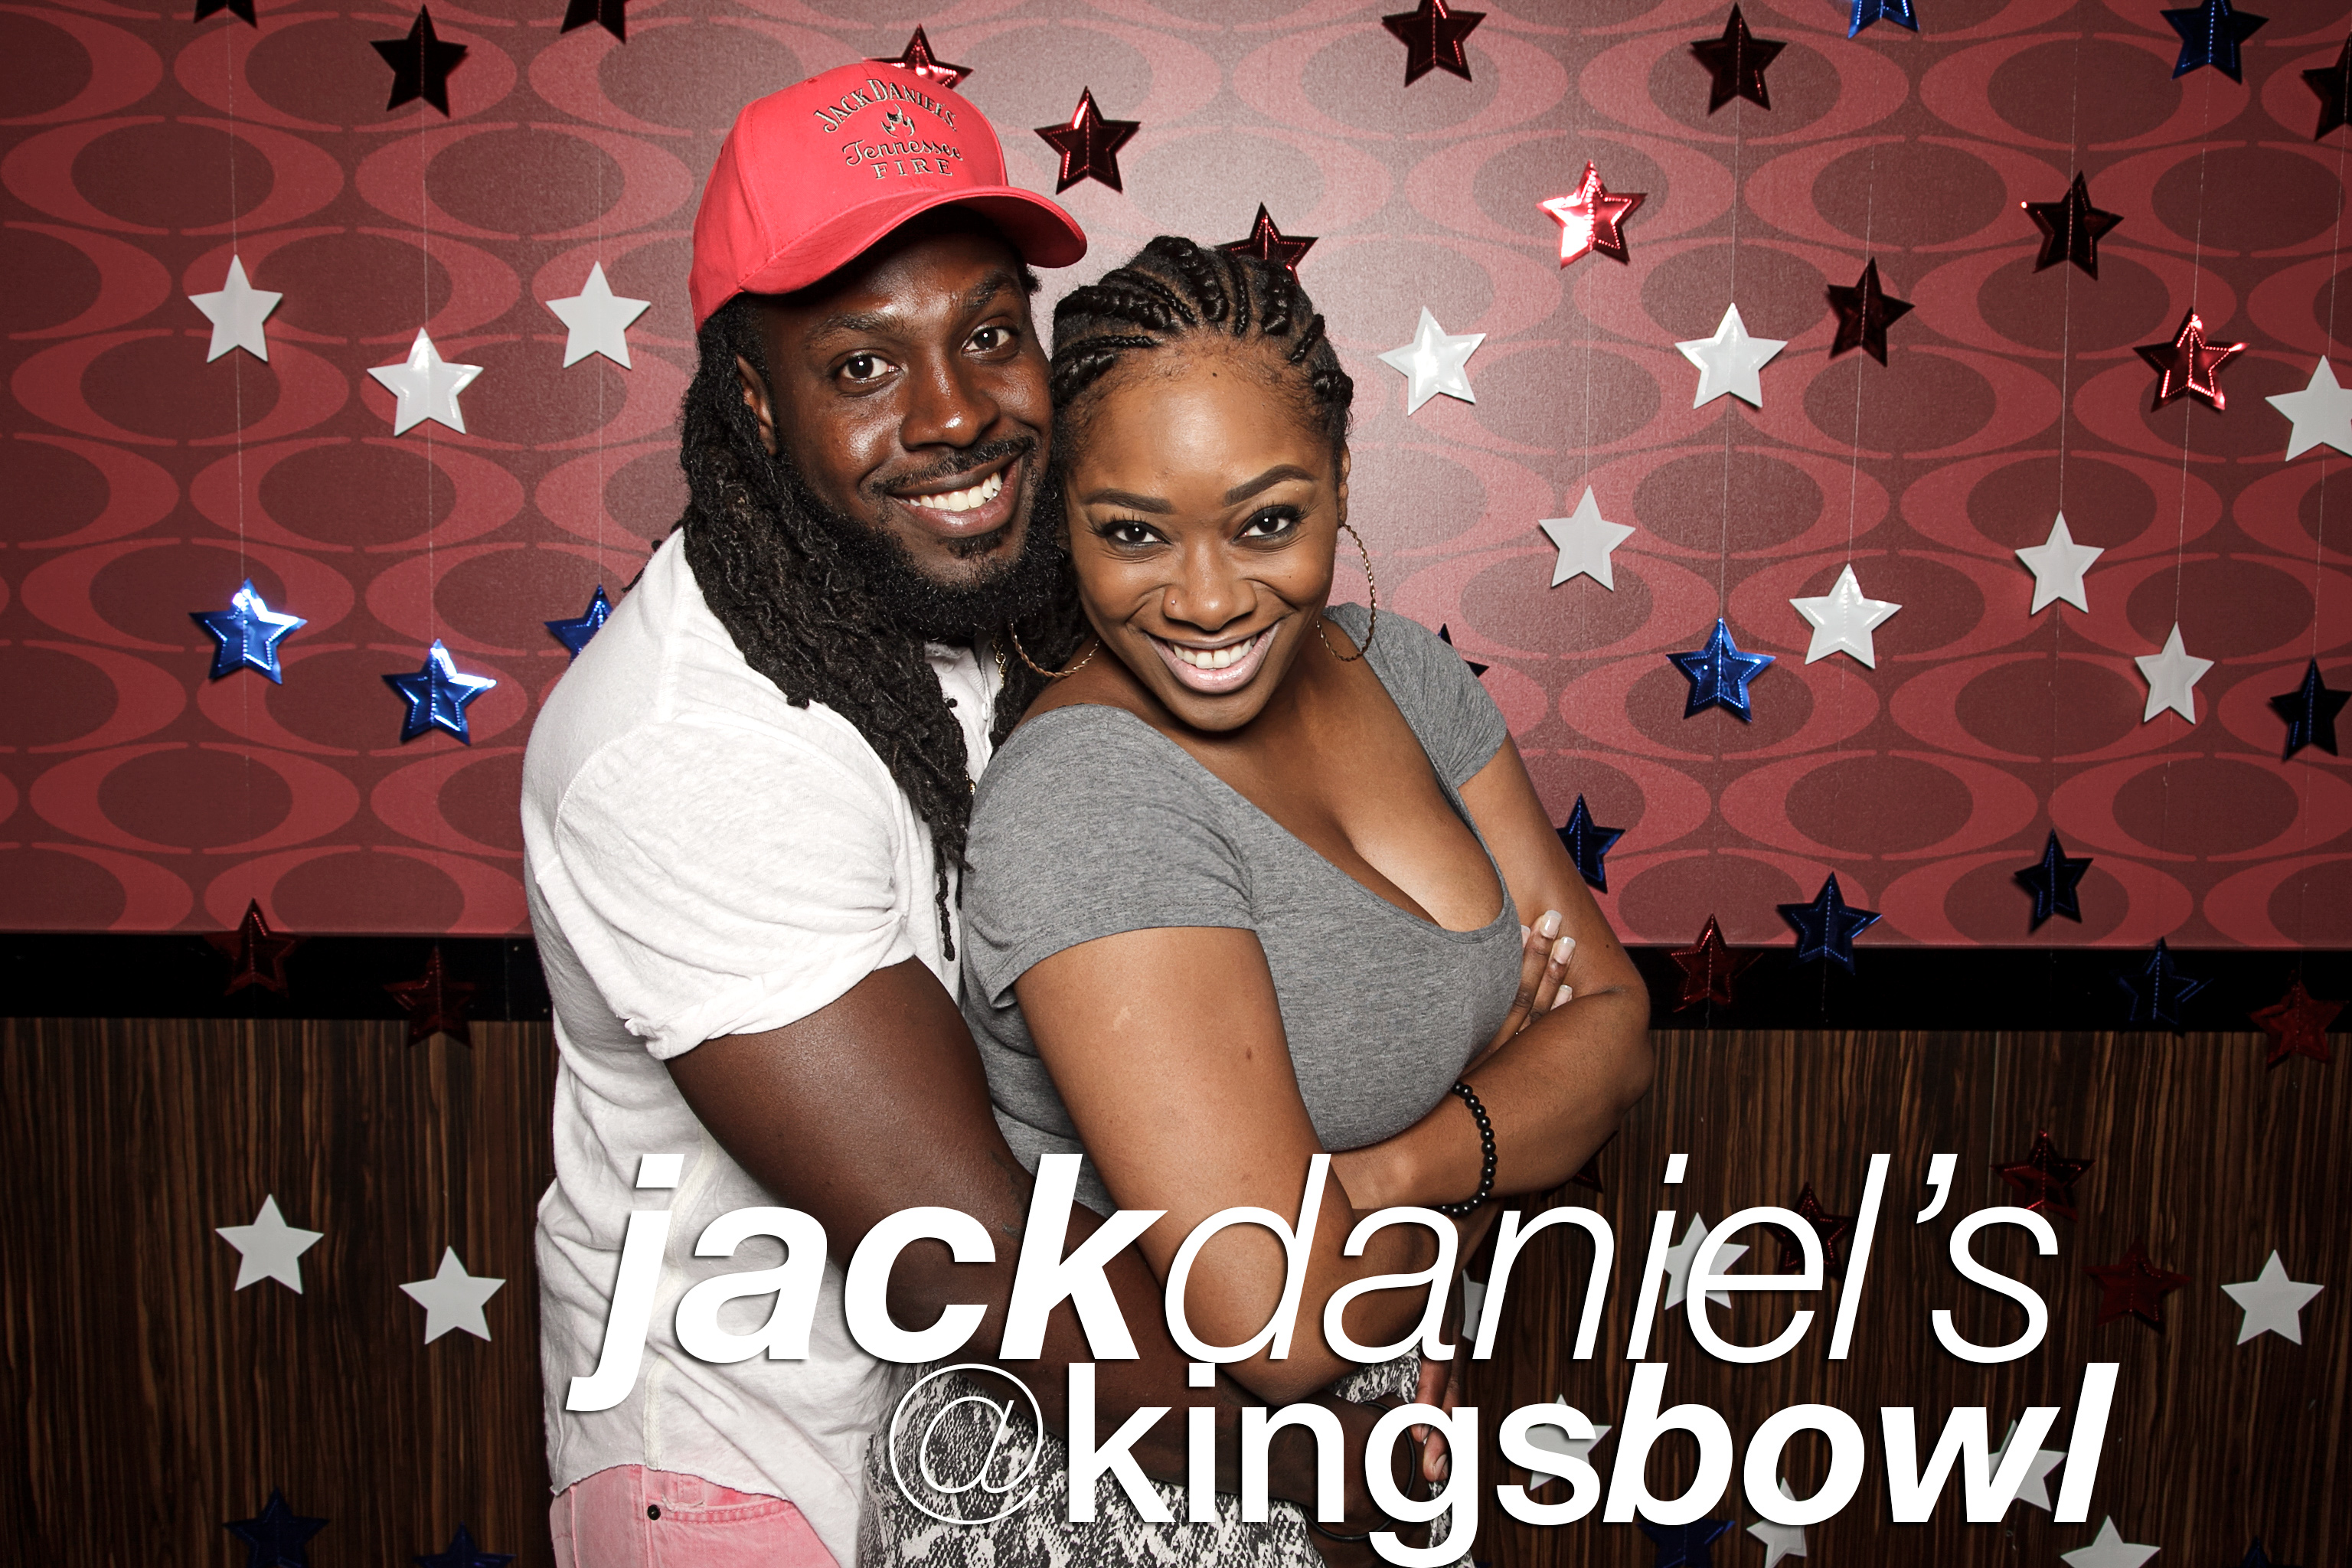 phoo booth portraits from jack daniels at kings bowl, july 2016